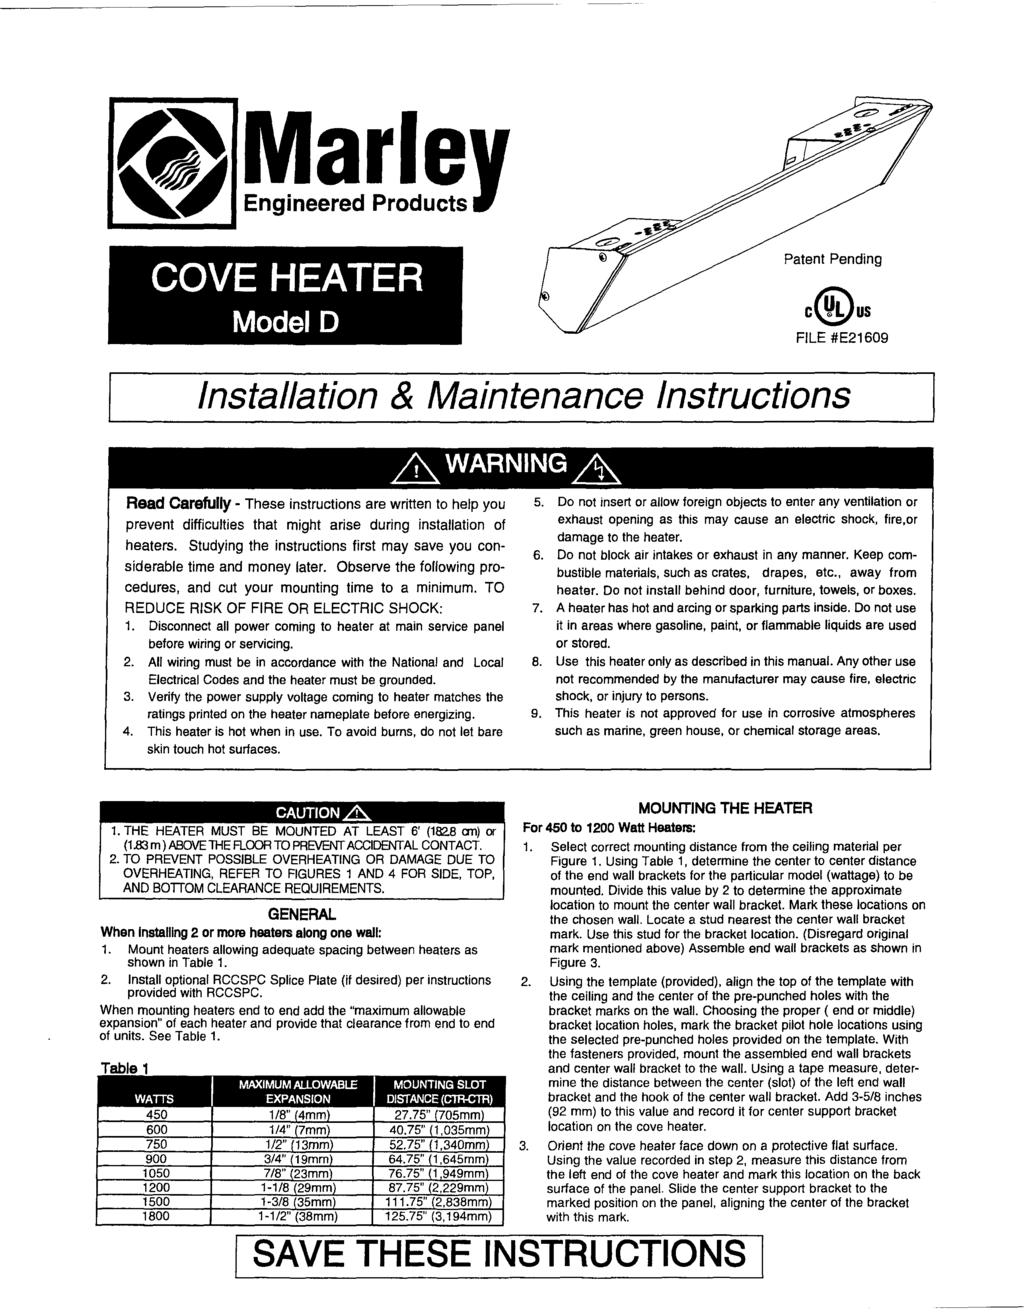 Tab 8 Cove Heaters Harris Air In This Section Syste1v1s Inc Marley Electric Heater Wiring Diagram Model D Patent Pending Cus File E21609 Installation Maintenance Instructions